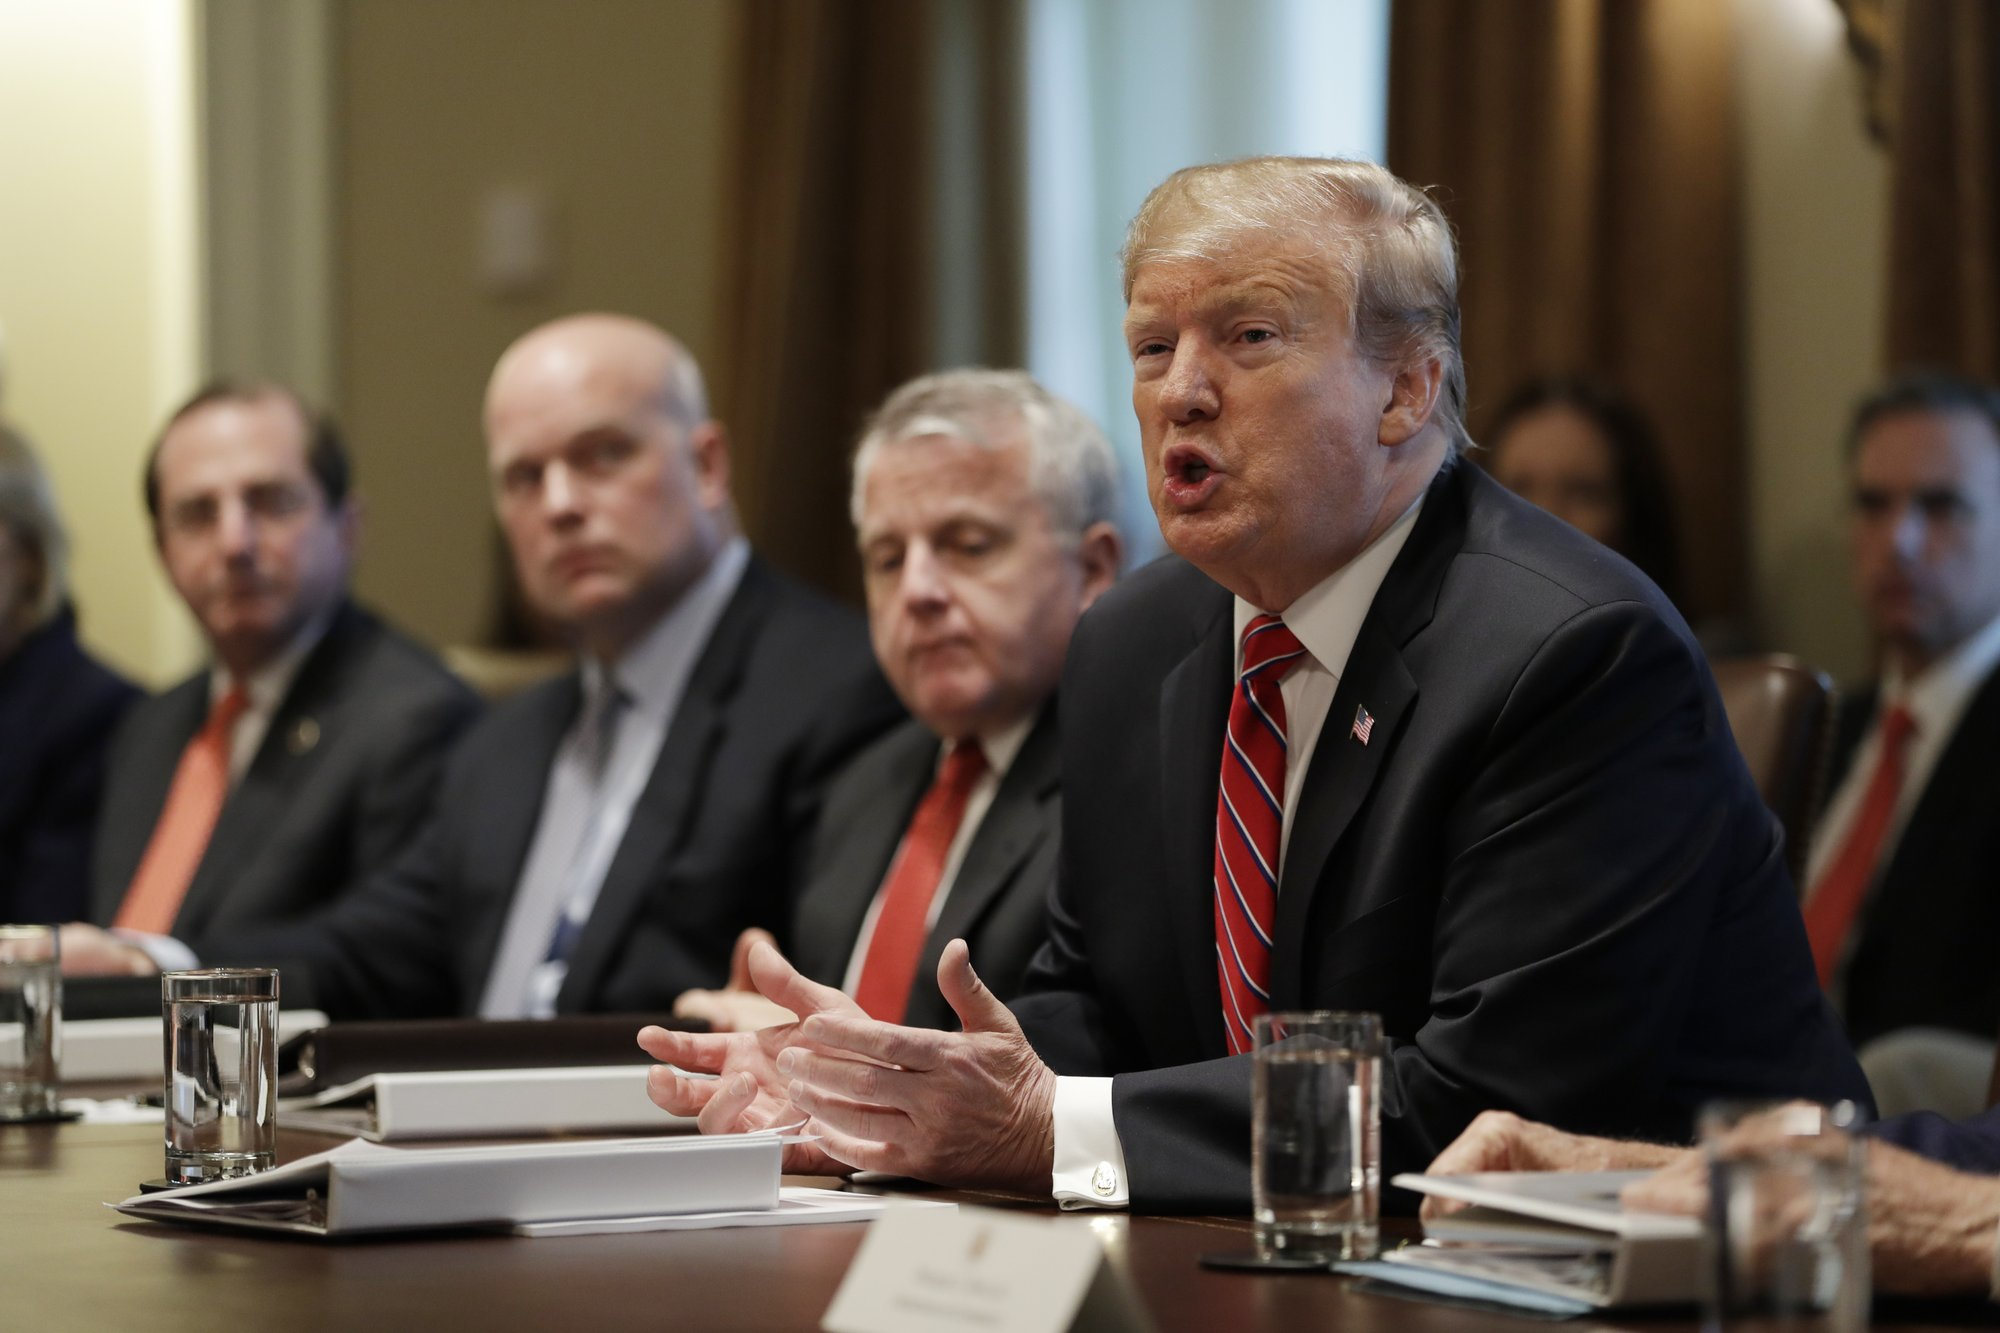 The Latest: Trump appears to be ready to accept budget deal